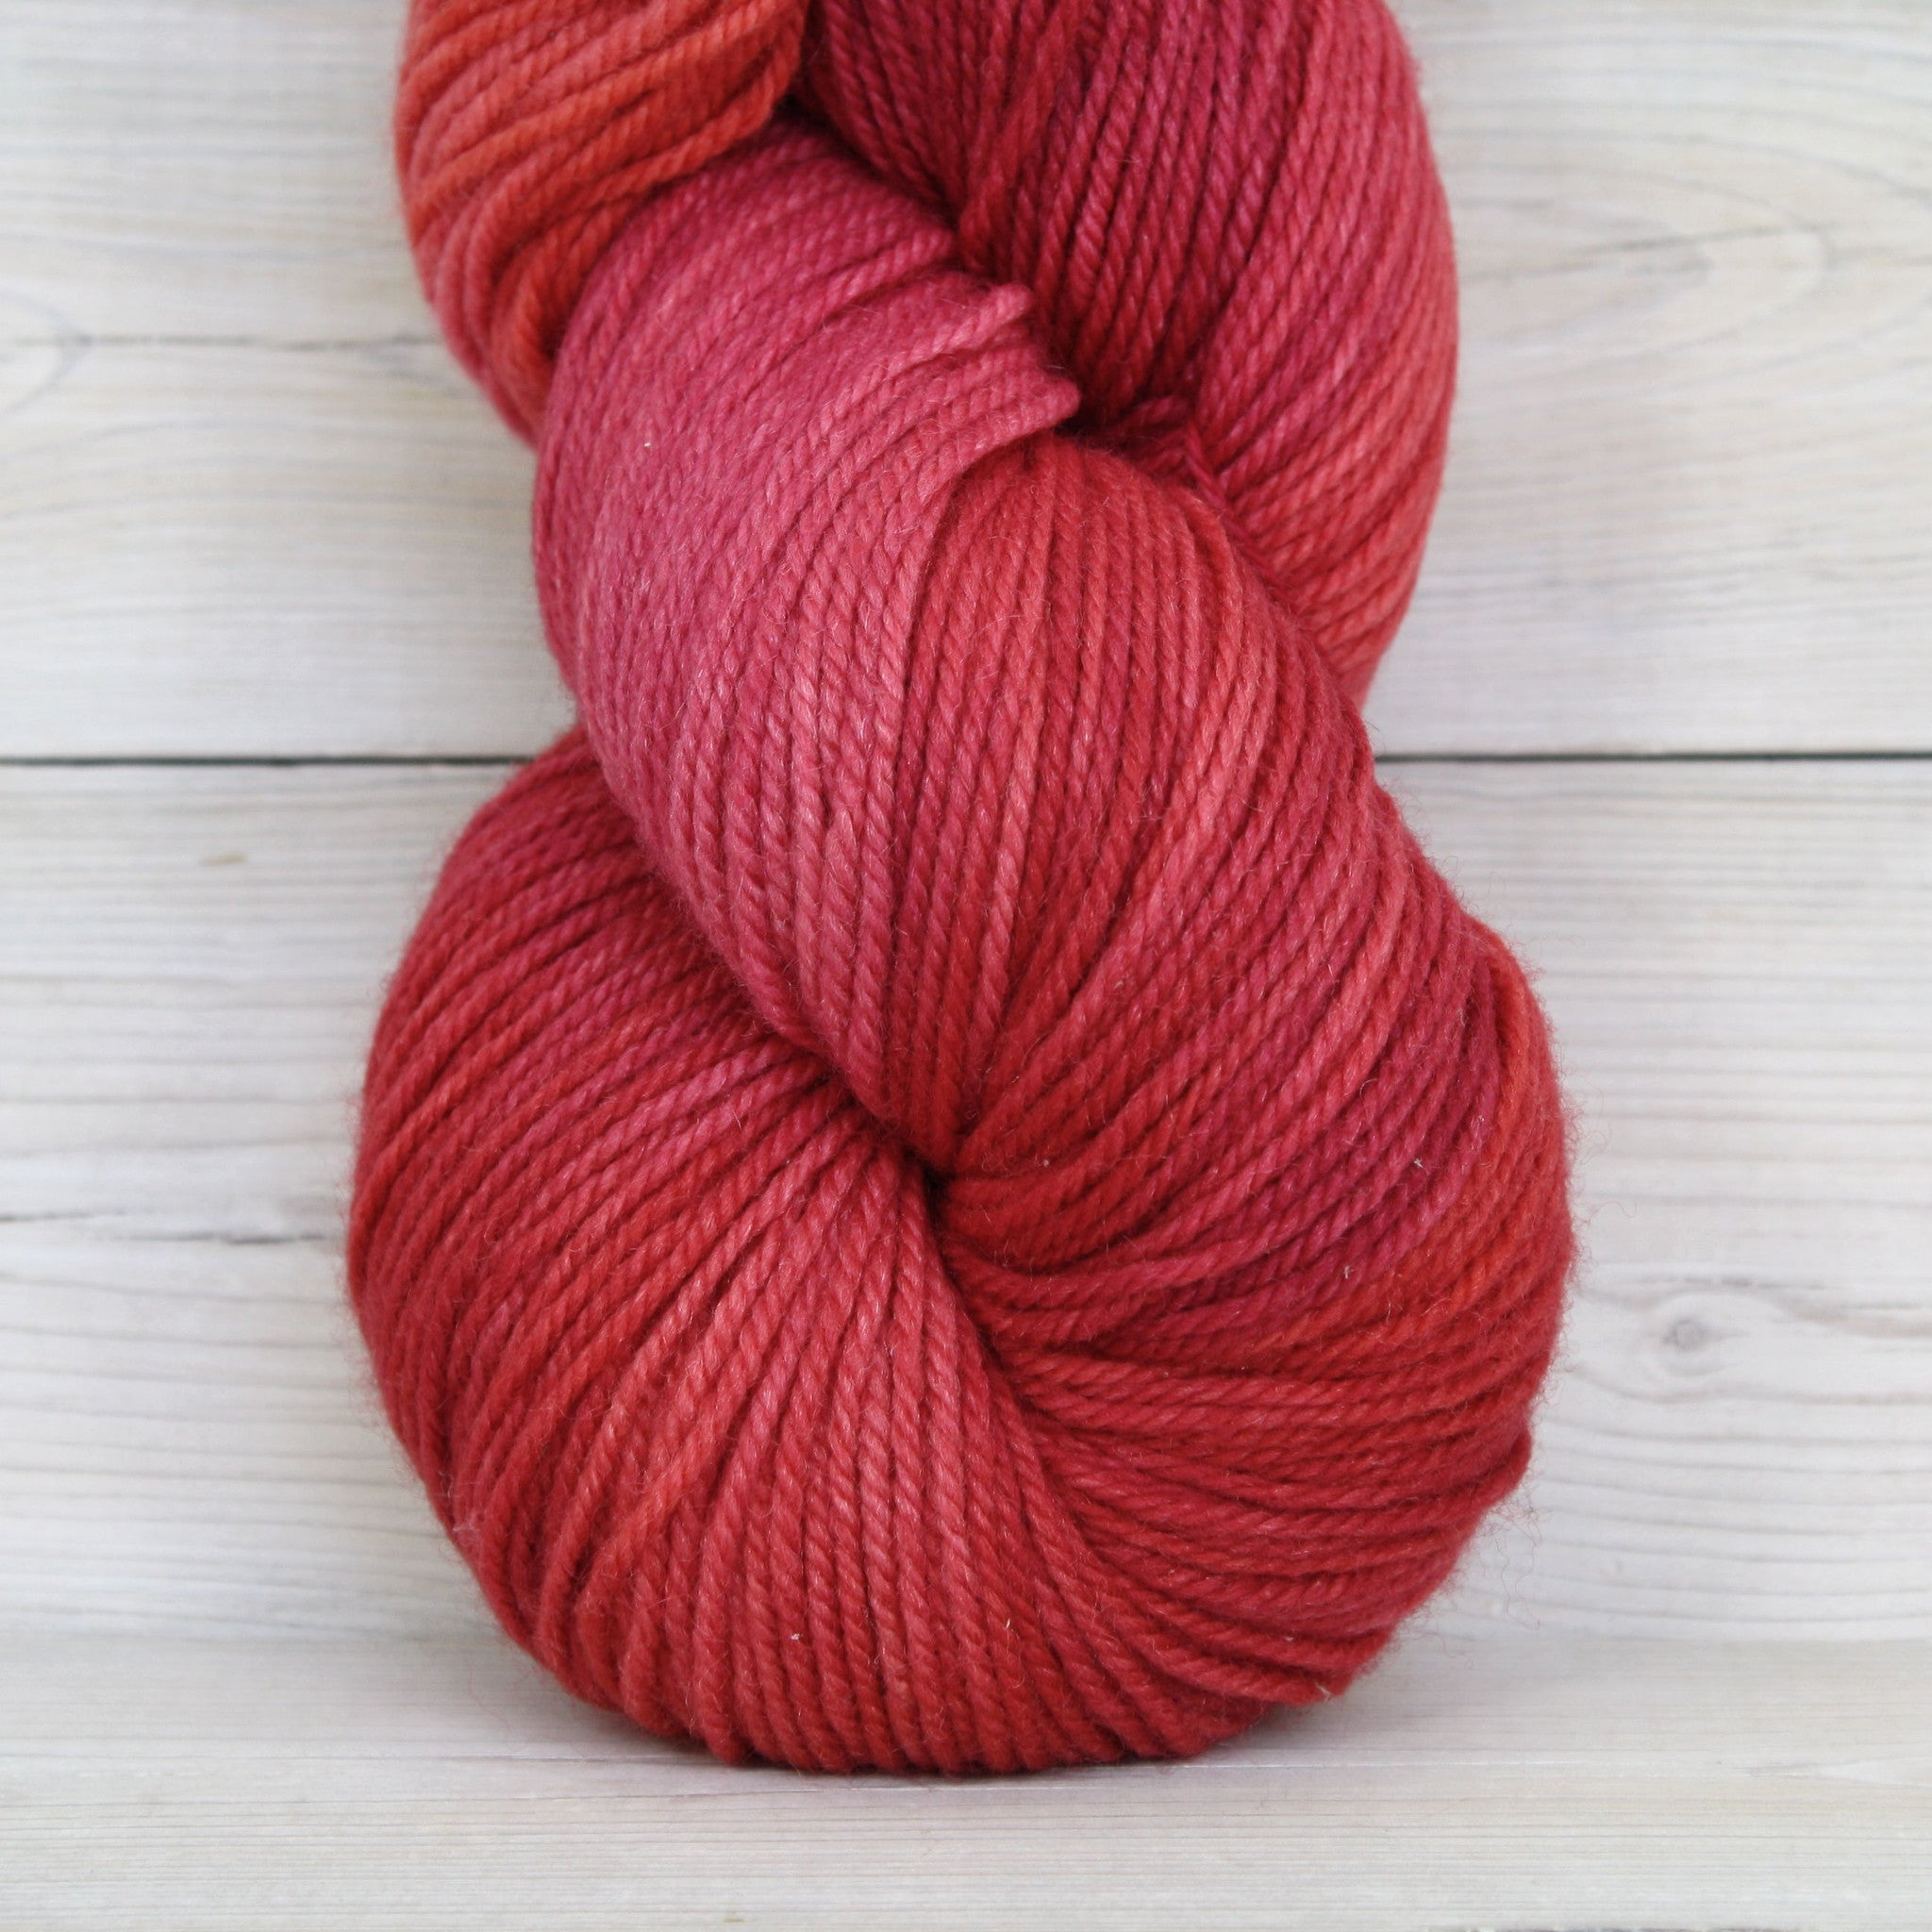 Zeta Yarn | Colorway: Popsicle